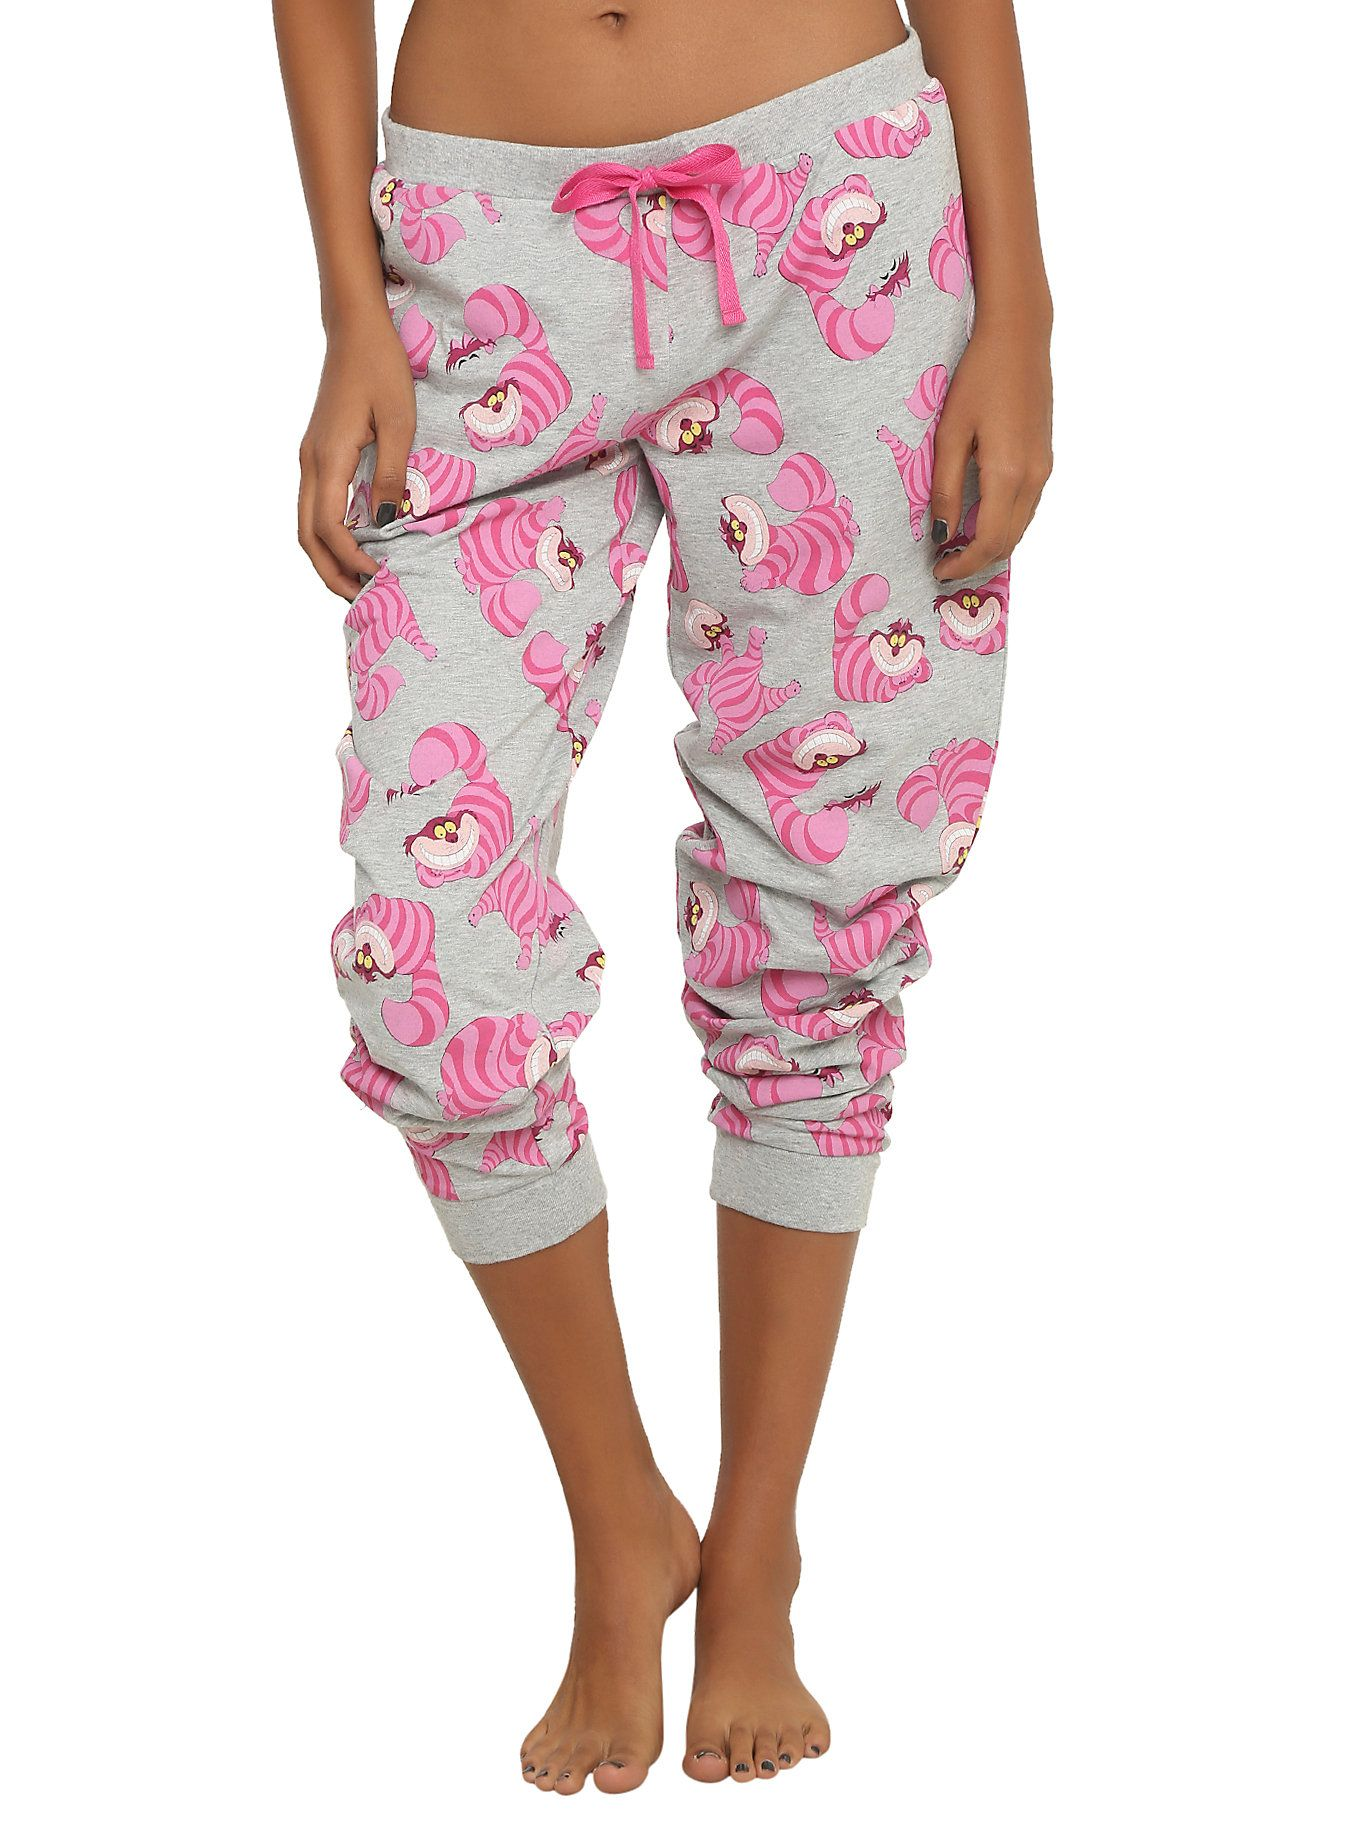 New Disney PJ pants from Hot Topic in 2019  db3bcf0472